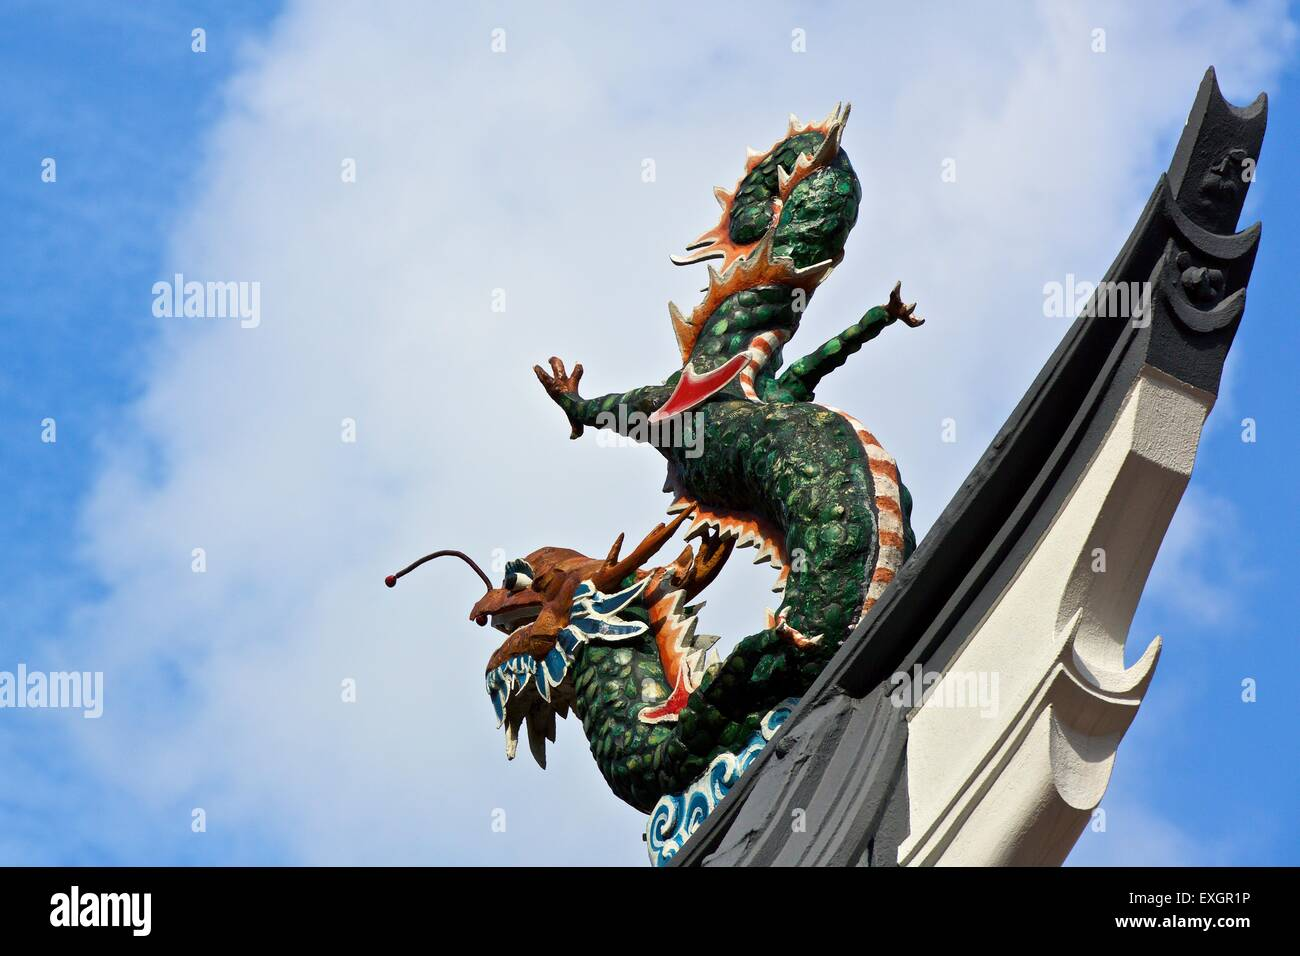 Carved Mythical Creatures On The Roof Of The Thian Hock Keng Temple, Singapore. - Stock Image